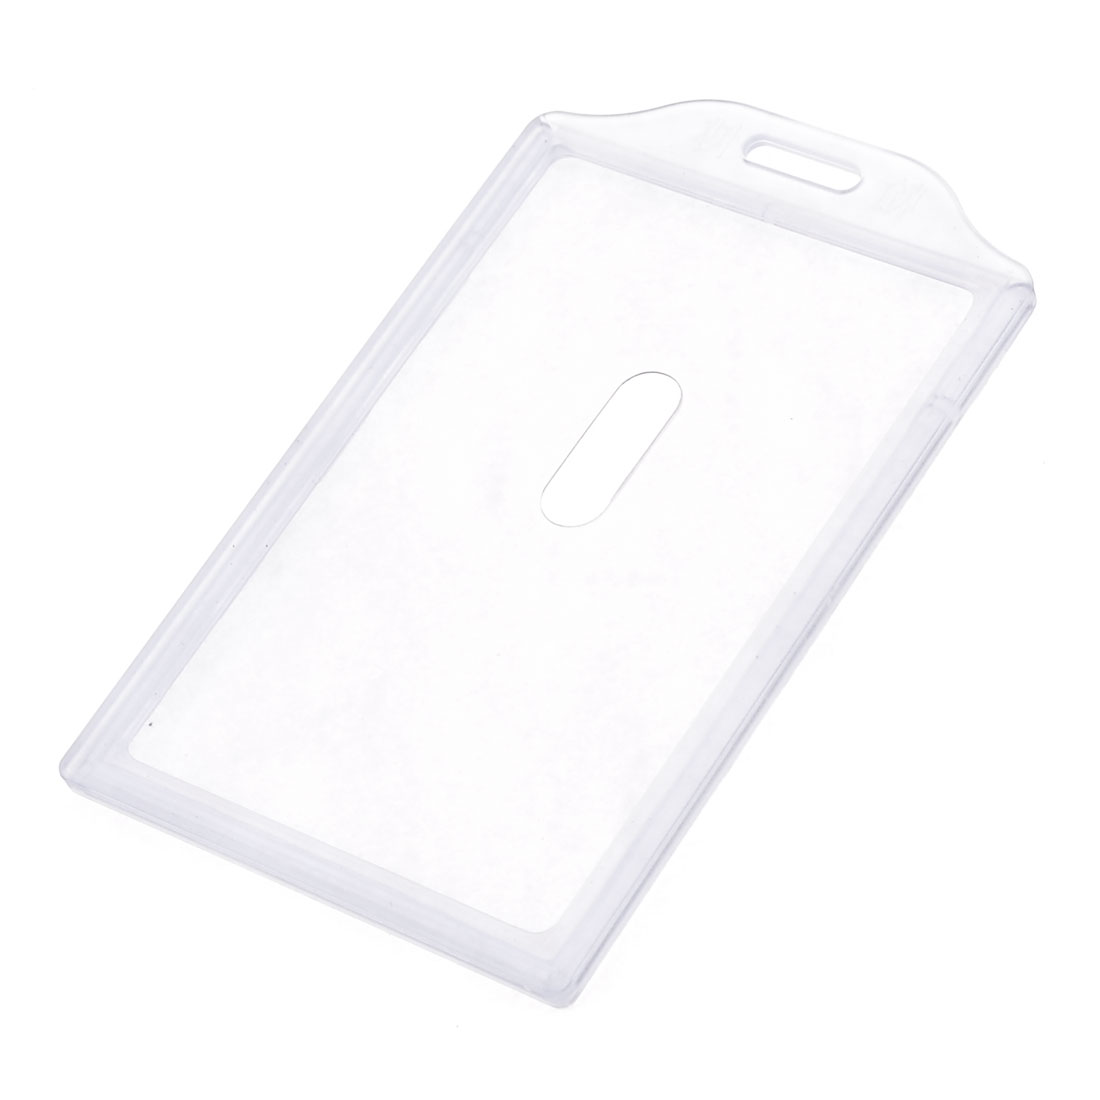 Light Blue Clear Plastic Housing Office Work Card Holder for Stafff